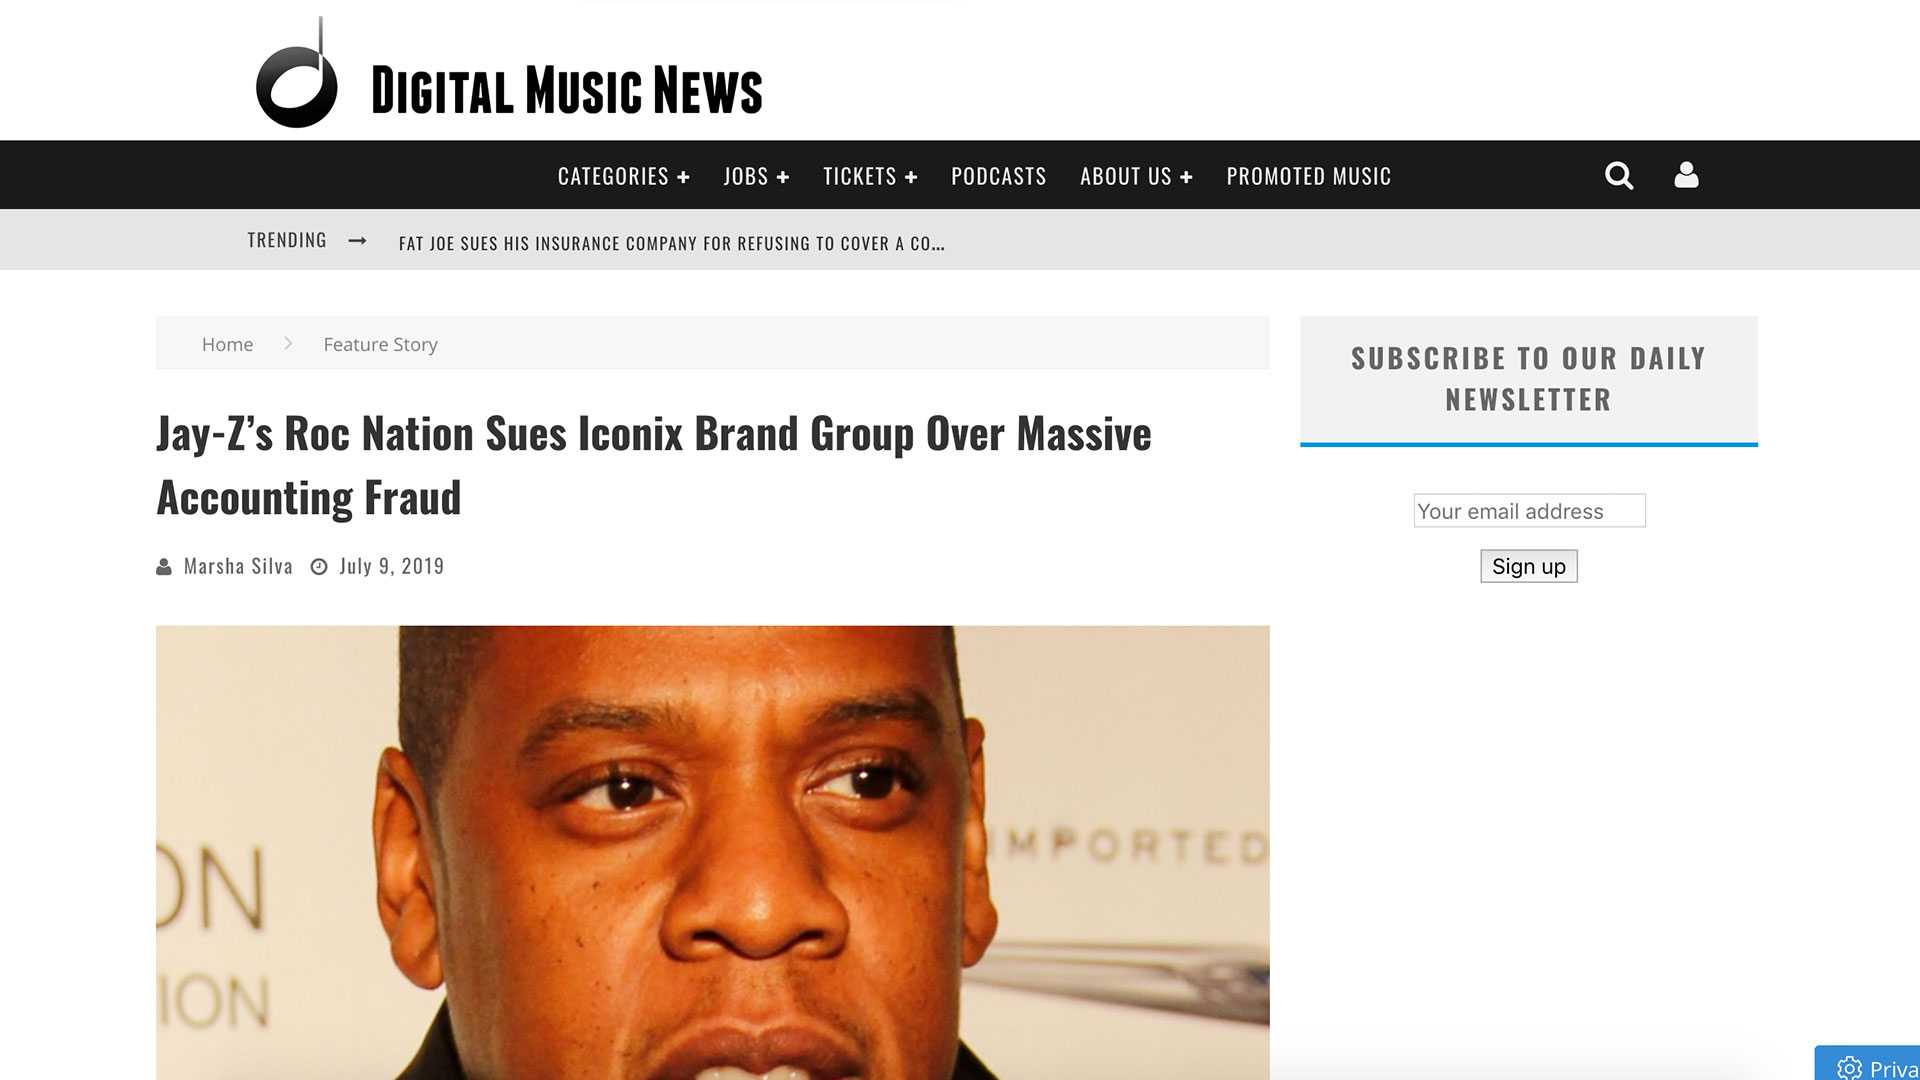 Fairness Rocks News Jay-Z's Roc Nation Sues Iconix Brand Group Over Massive Accounting Fraud